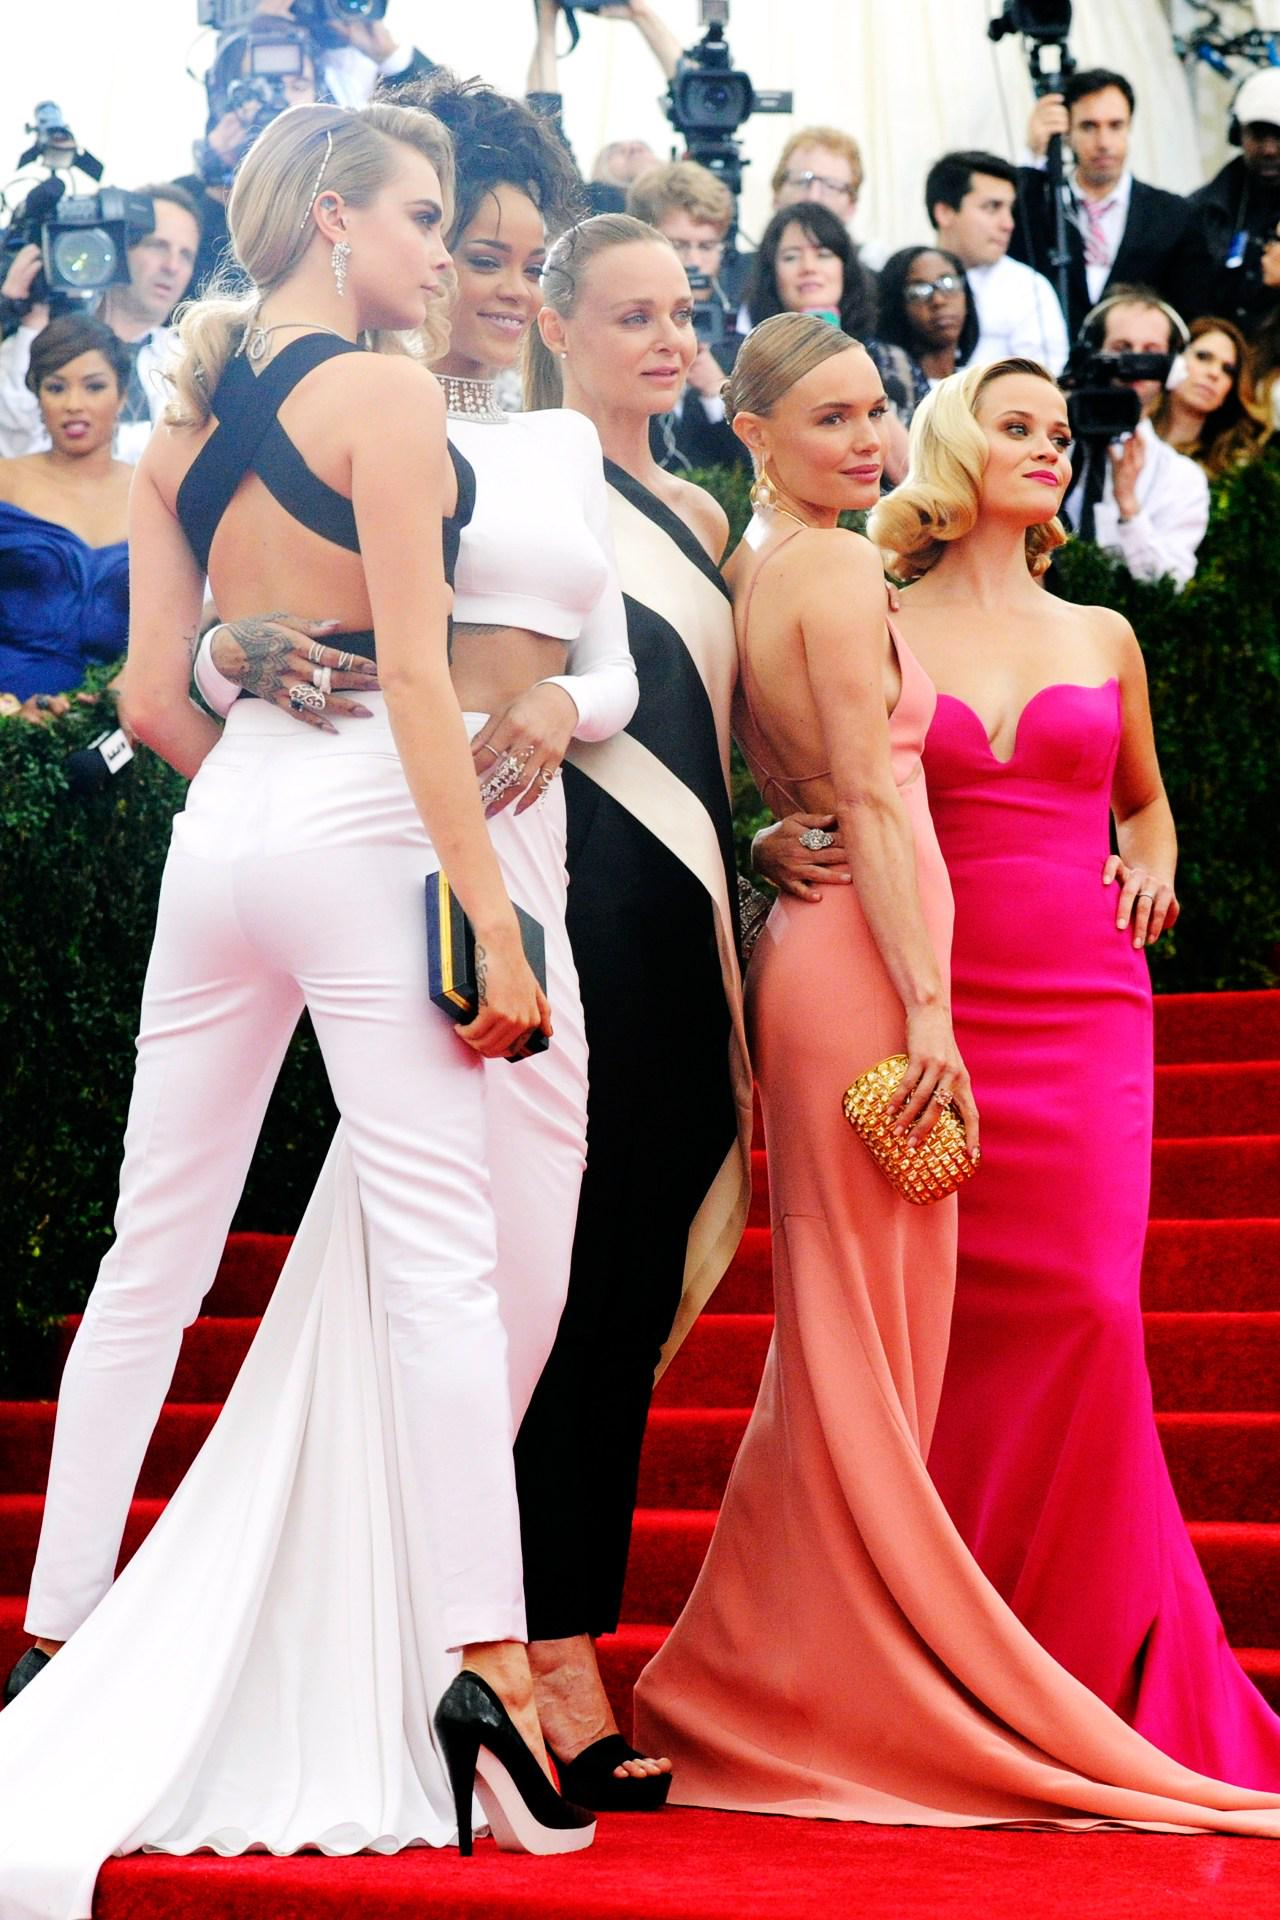 RT @BritishVogue: With the Met Ball 2015 just around the corner, take a look back at last year's red carpet: http://t.co/JTgCrYWFko http://…